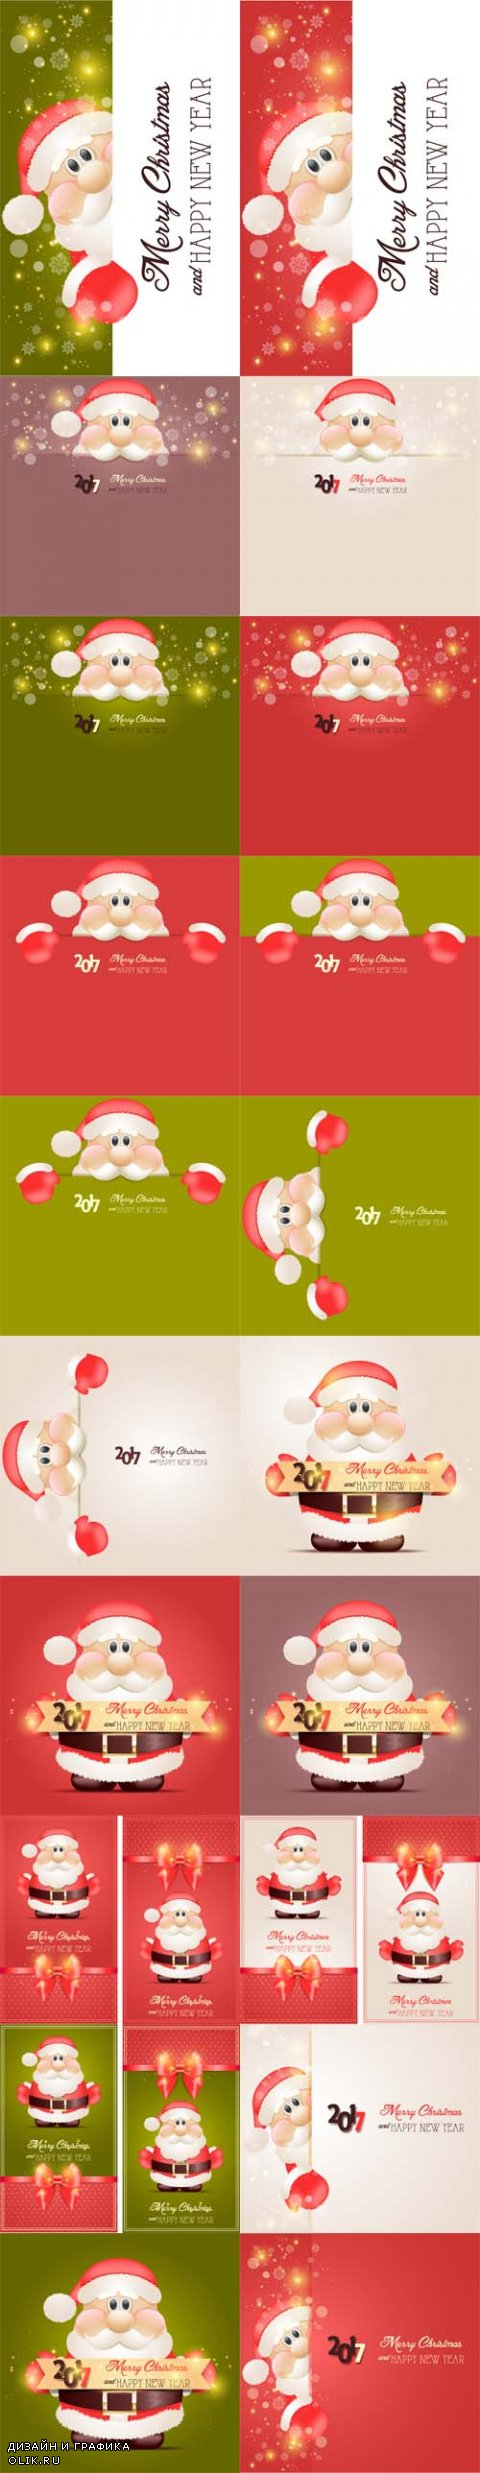 Vector Santa Claus Backgrounds and Banners 2017